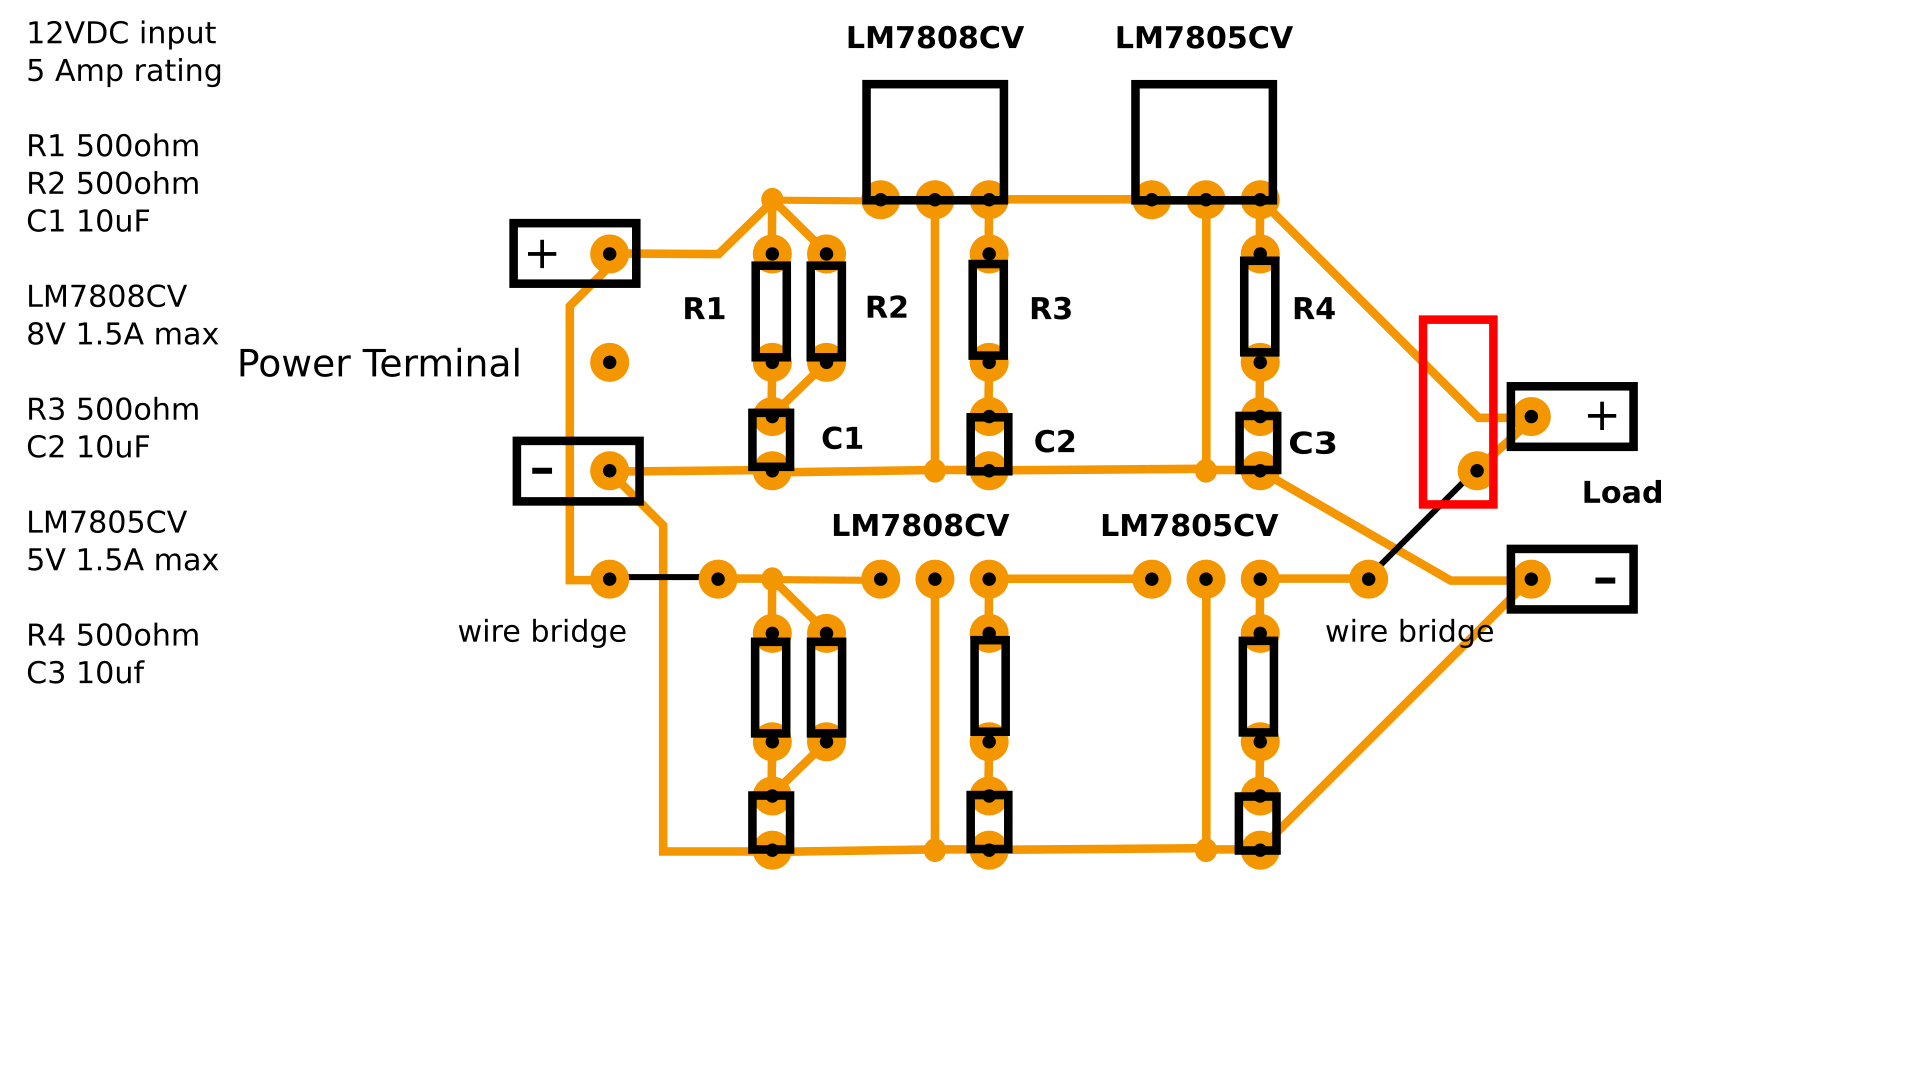 hight resolution of wiring diagram how to use to fix a problem wiring diagram show to fix no communication bus wiring problems for 2004 mazda vehicles